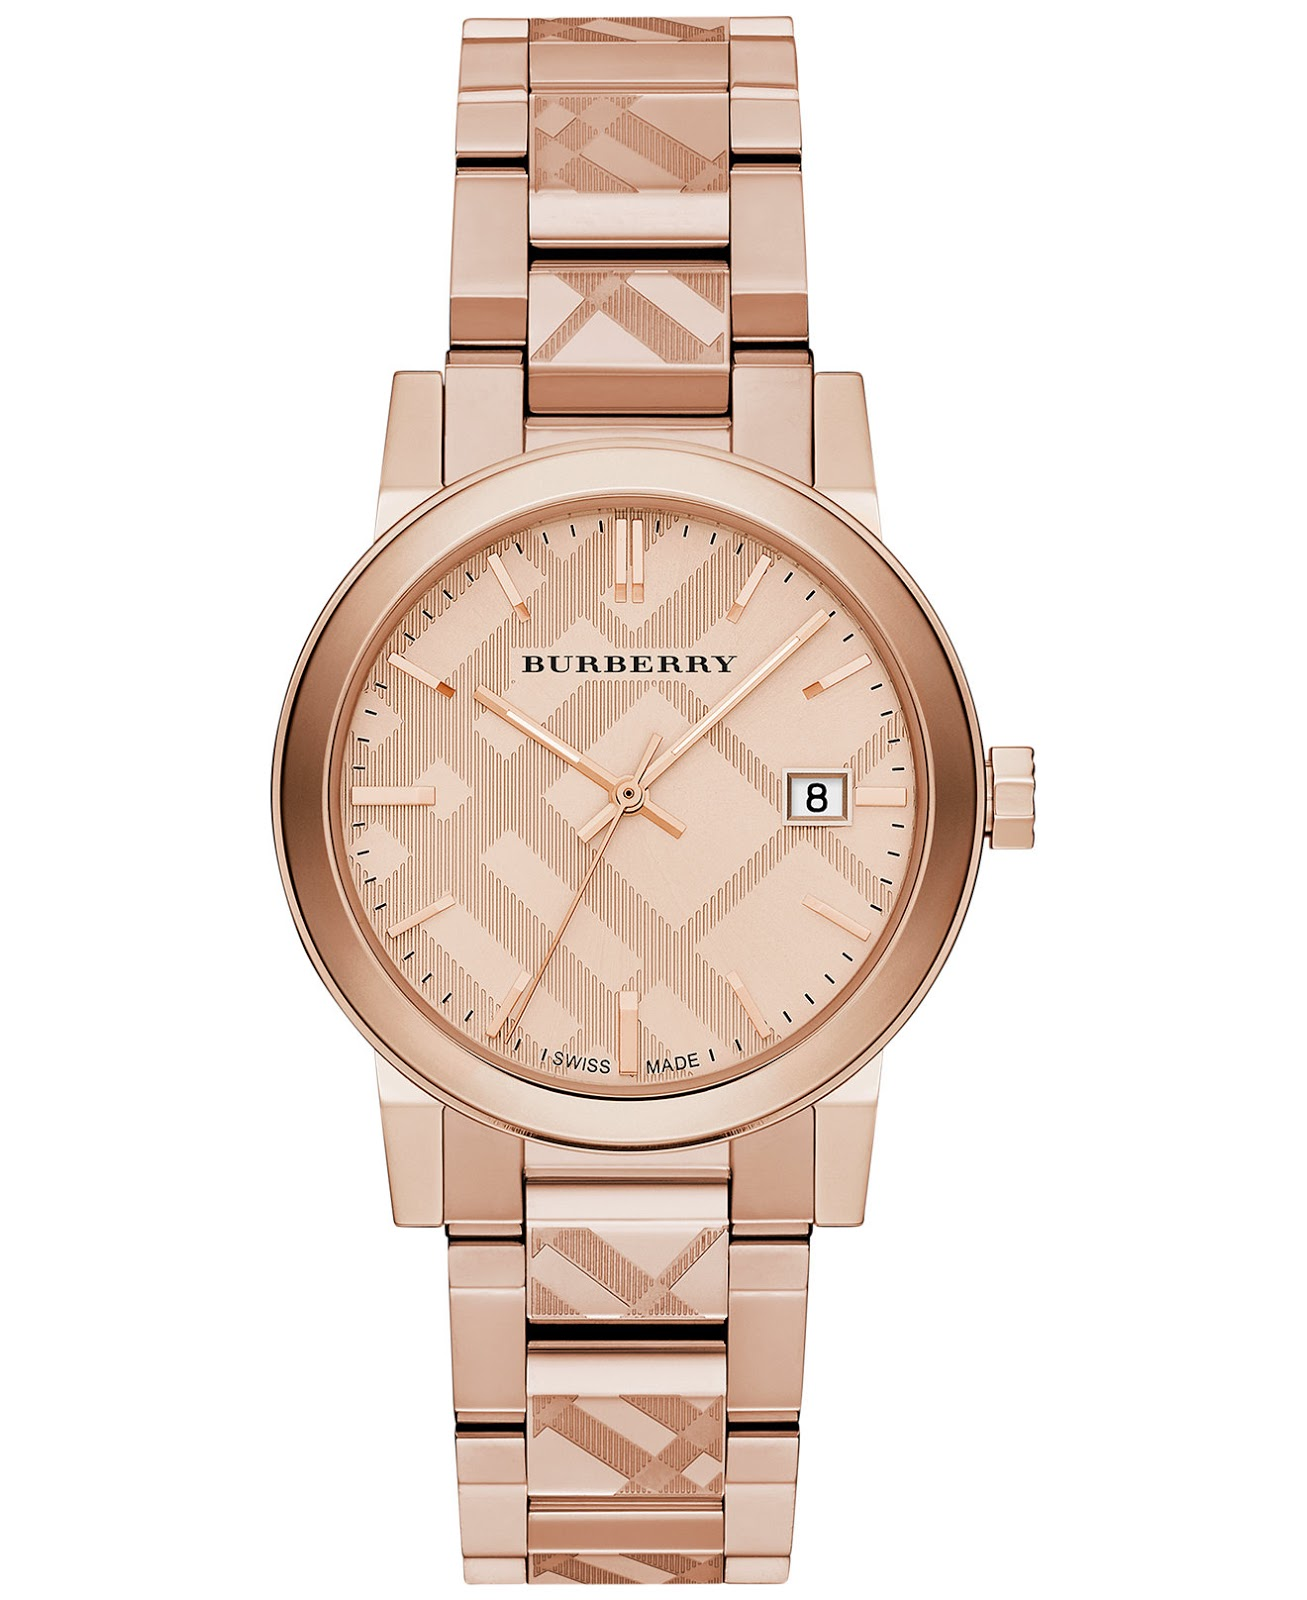 http://uk.burberry.com/the-city-bu9039-38mm-p39472831